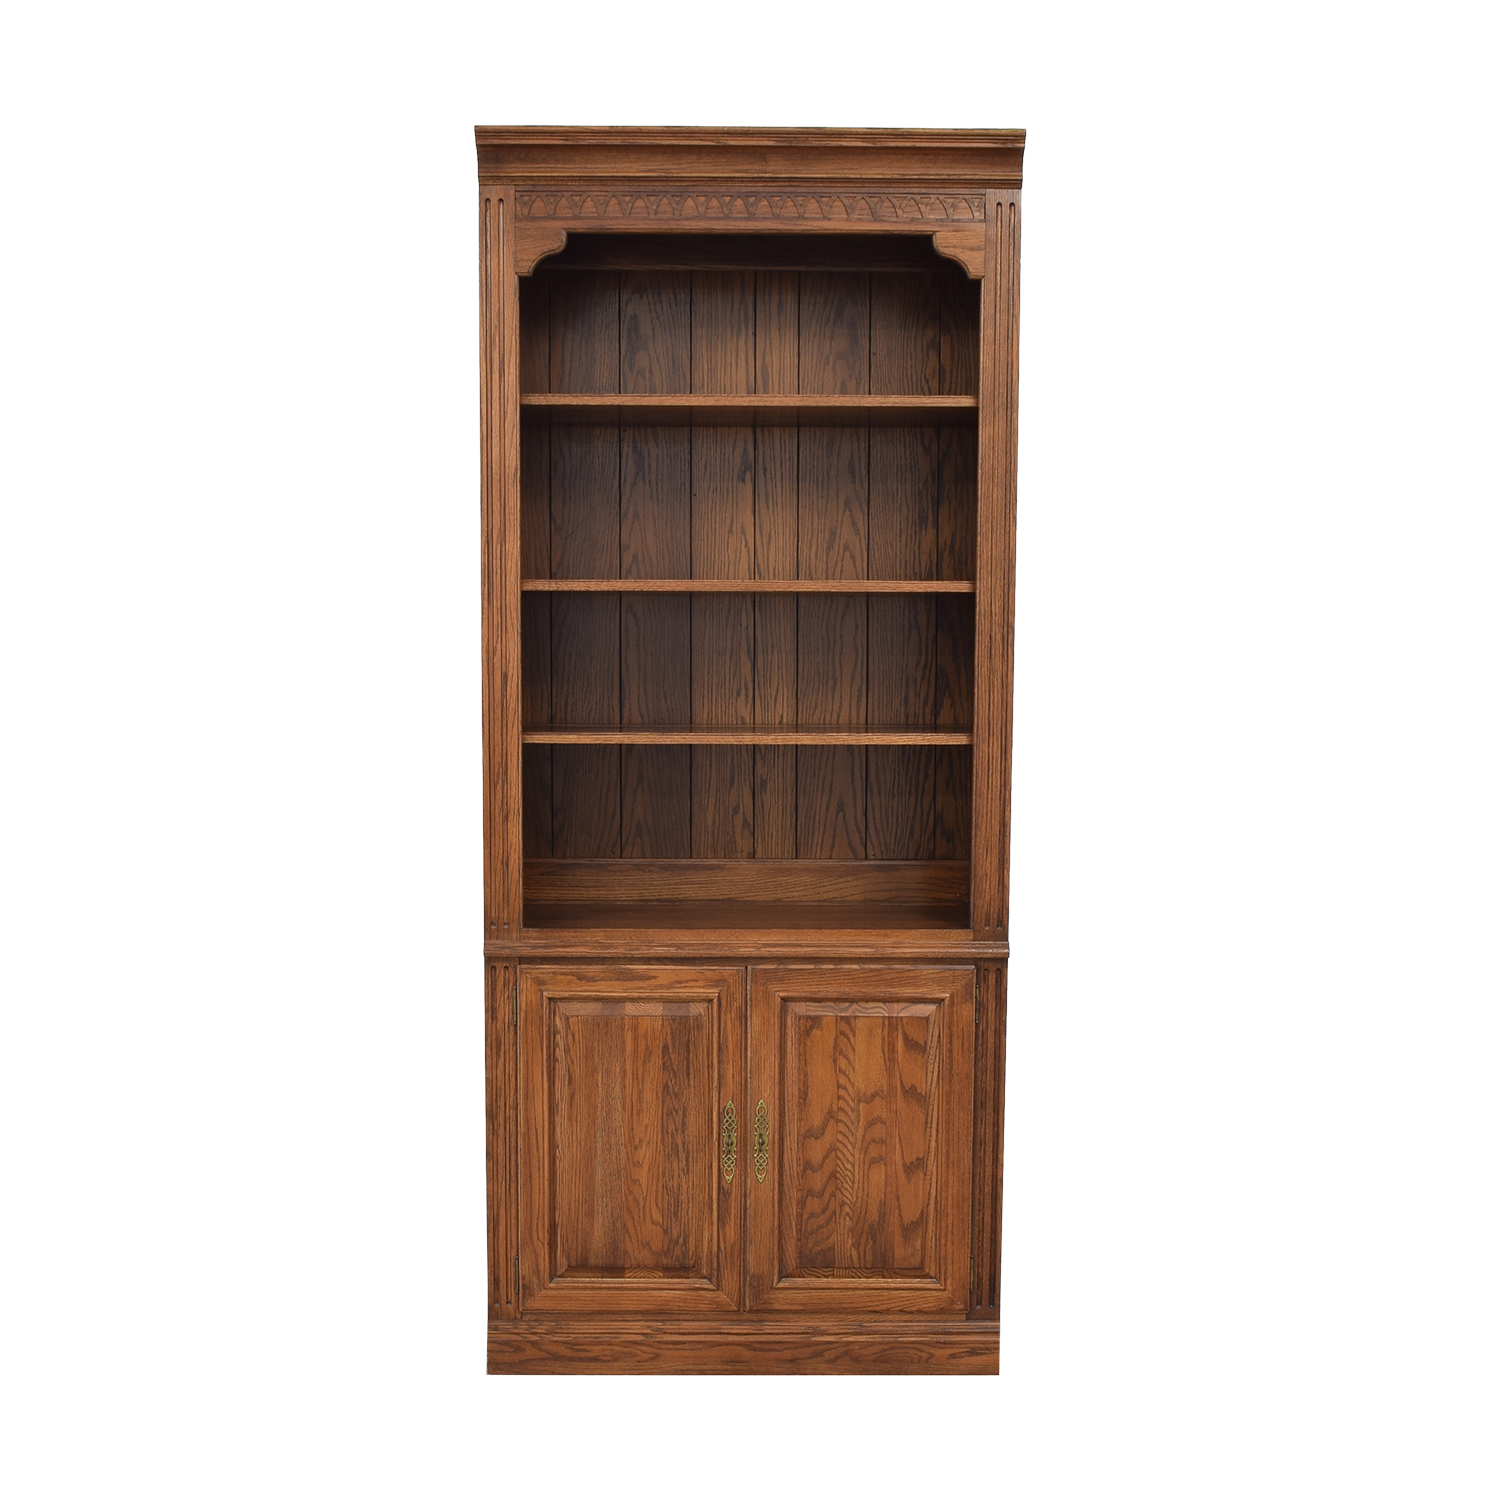 shop Ethan Allen Two Door Bookcase Ethan Allen Bookcases & Shelving